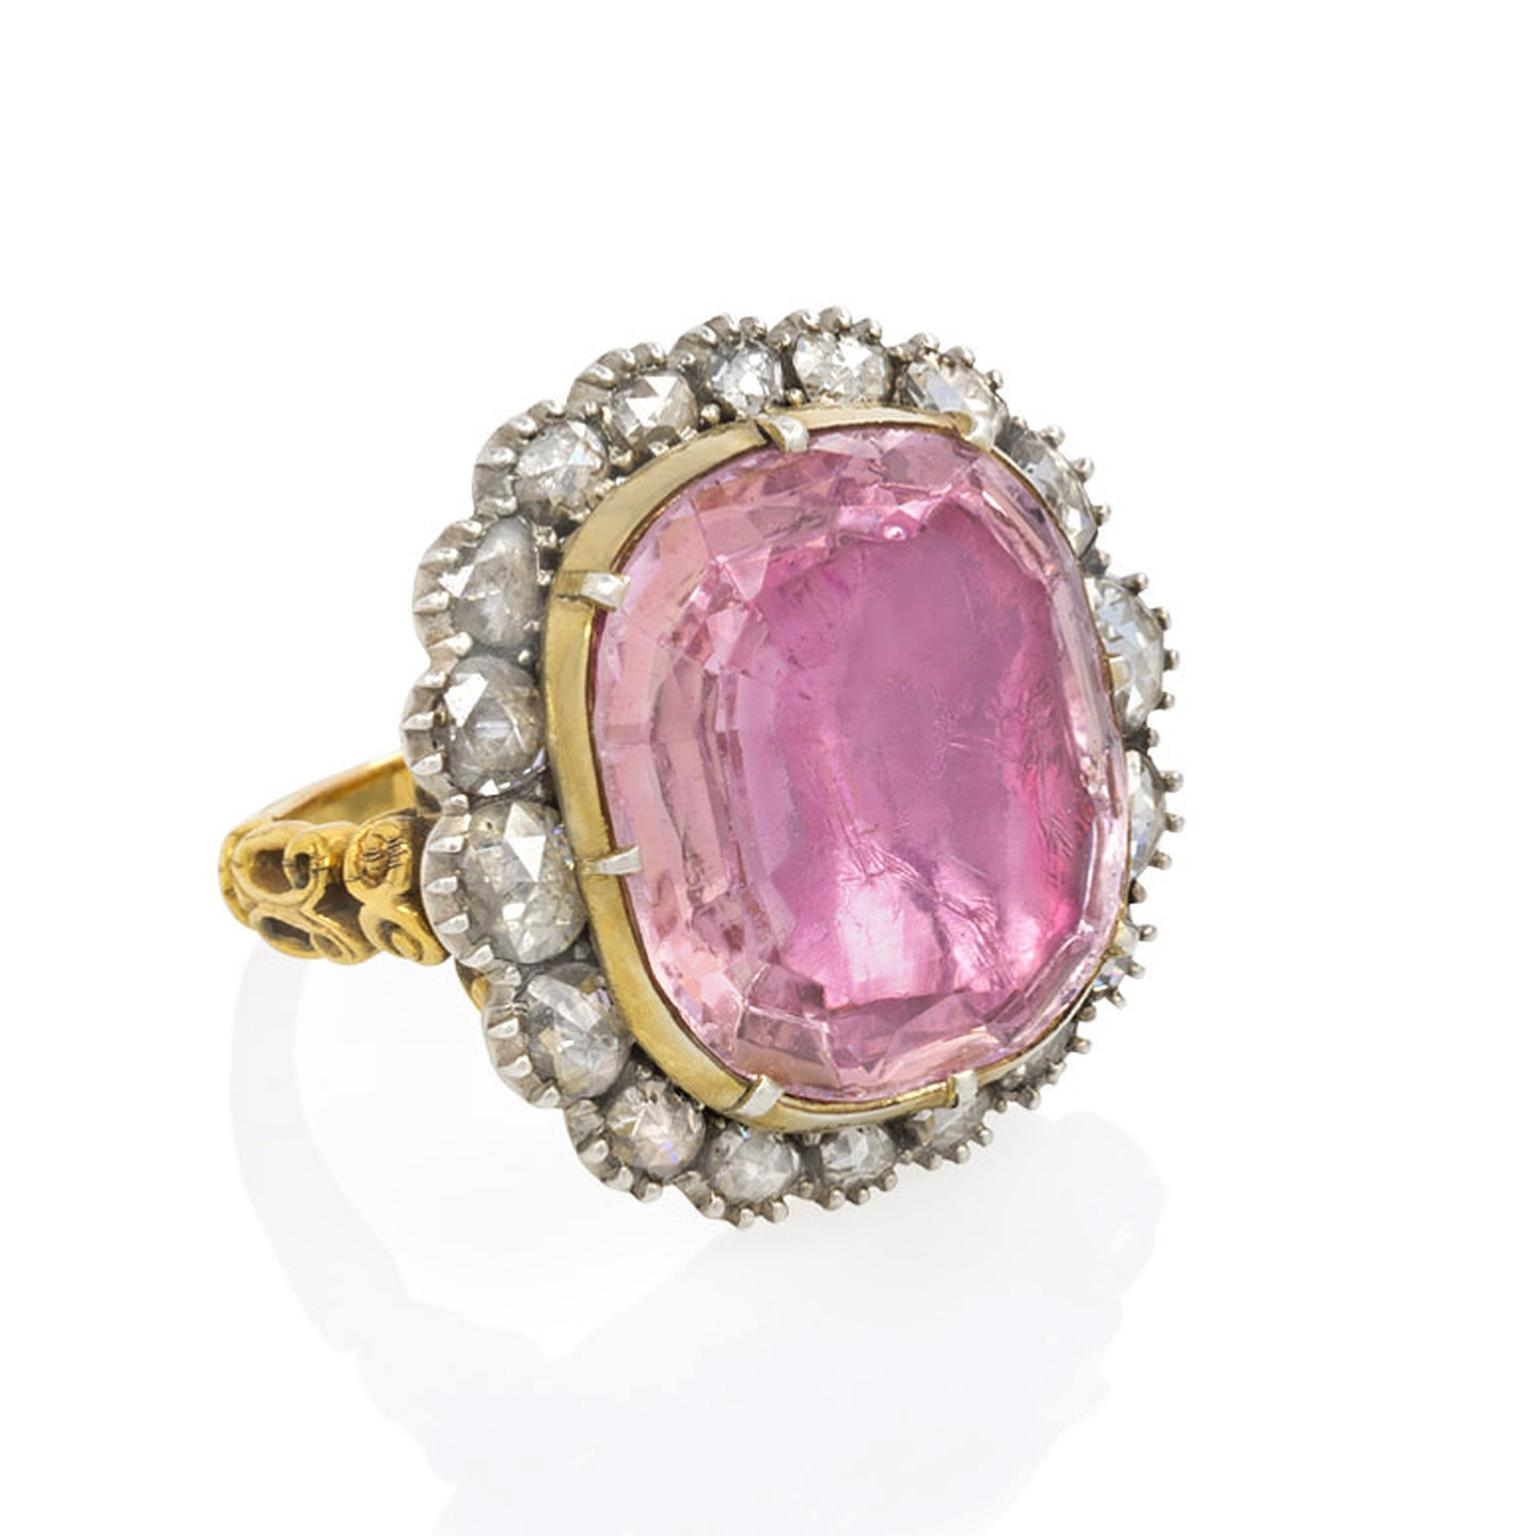 Kentshire antique cushion-cut, foiled pink topaz ring